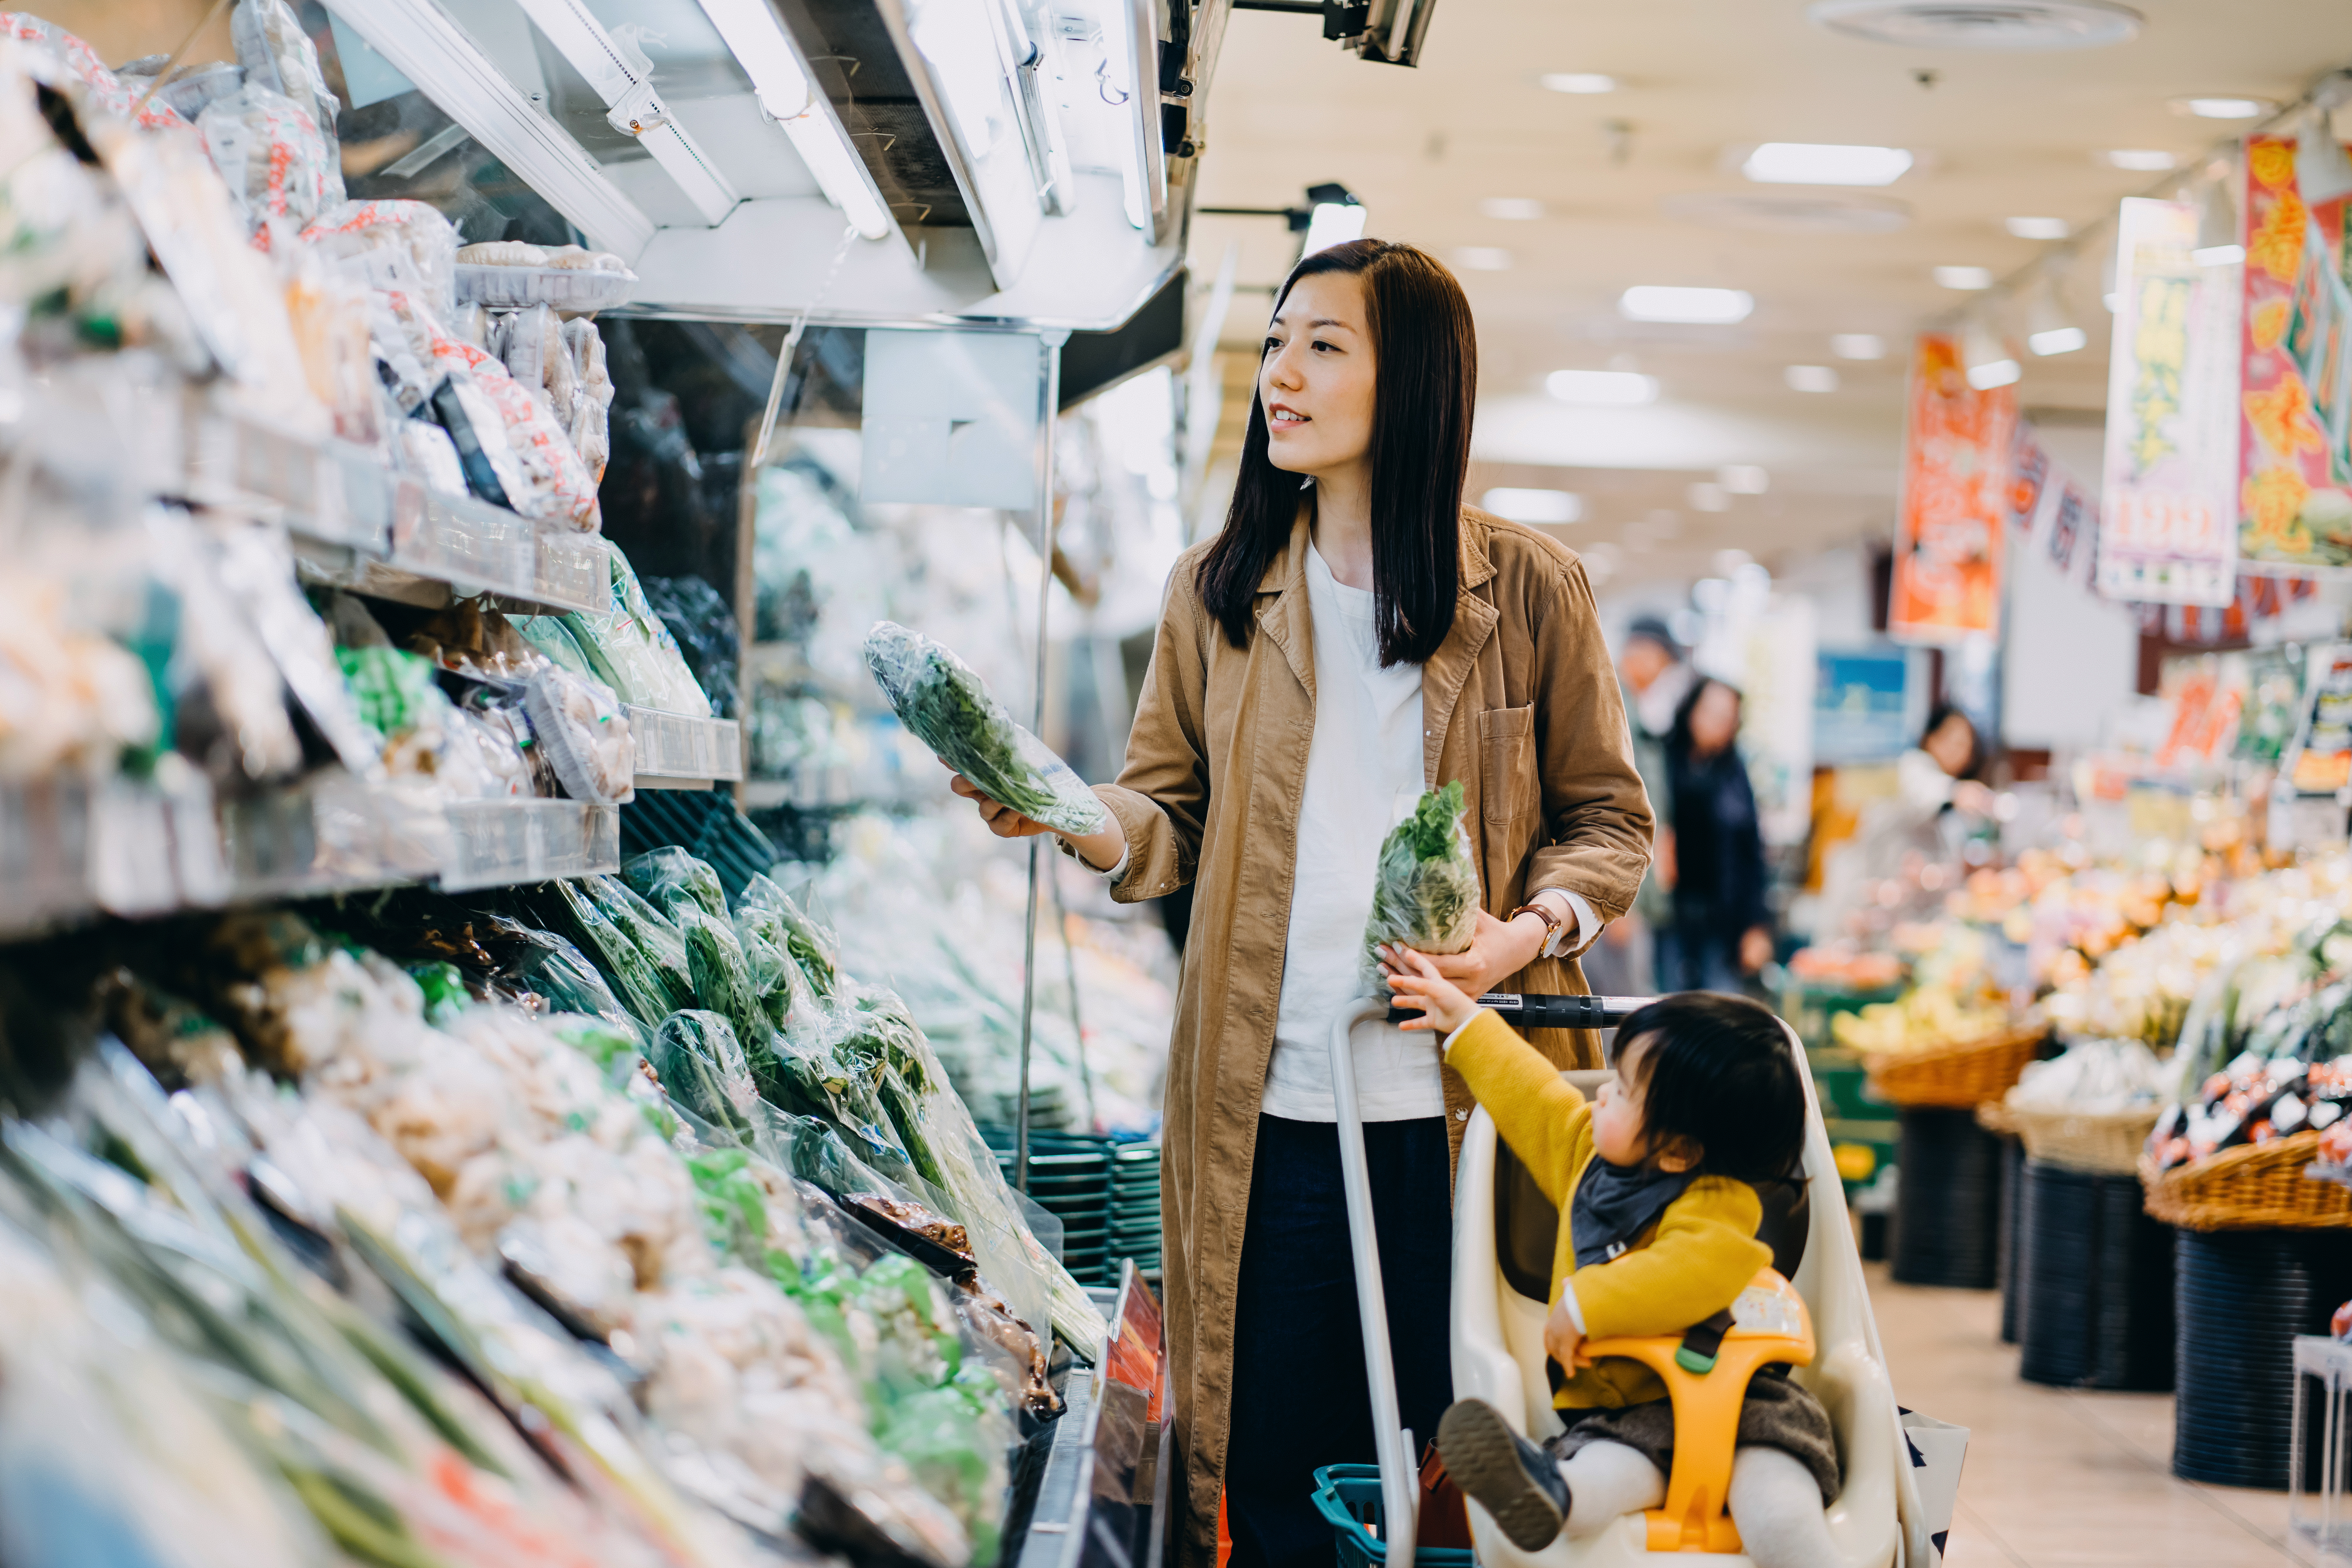 Plastic waste is everywhere in grocery stores. Can they cut down?